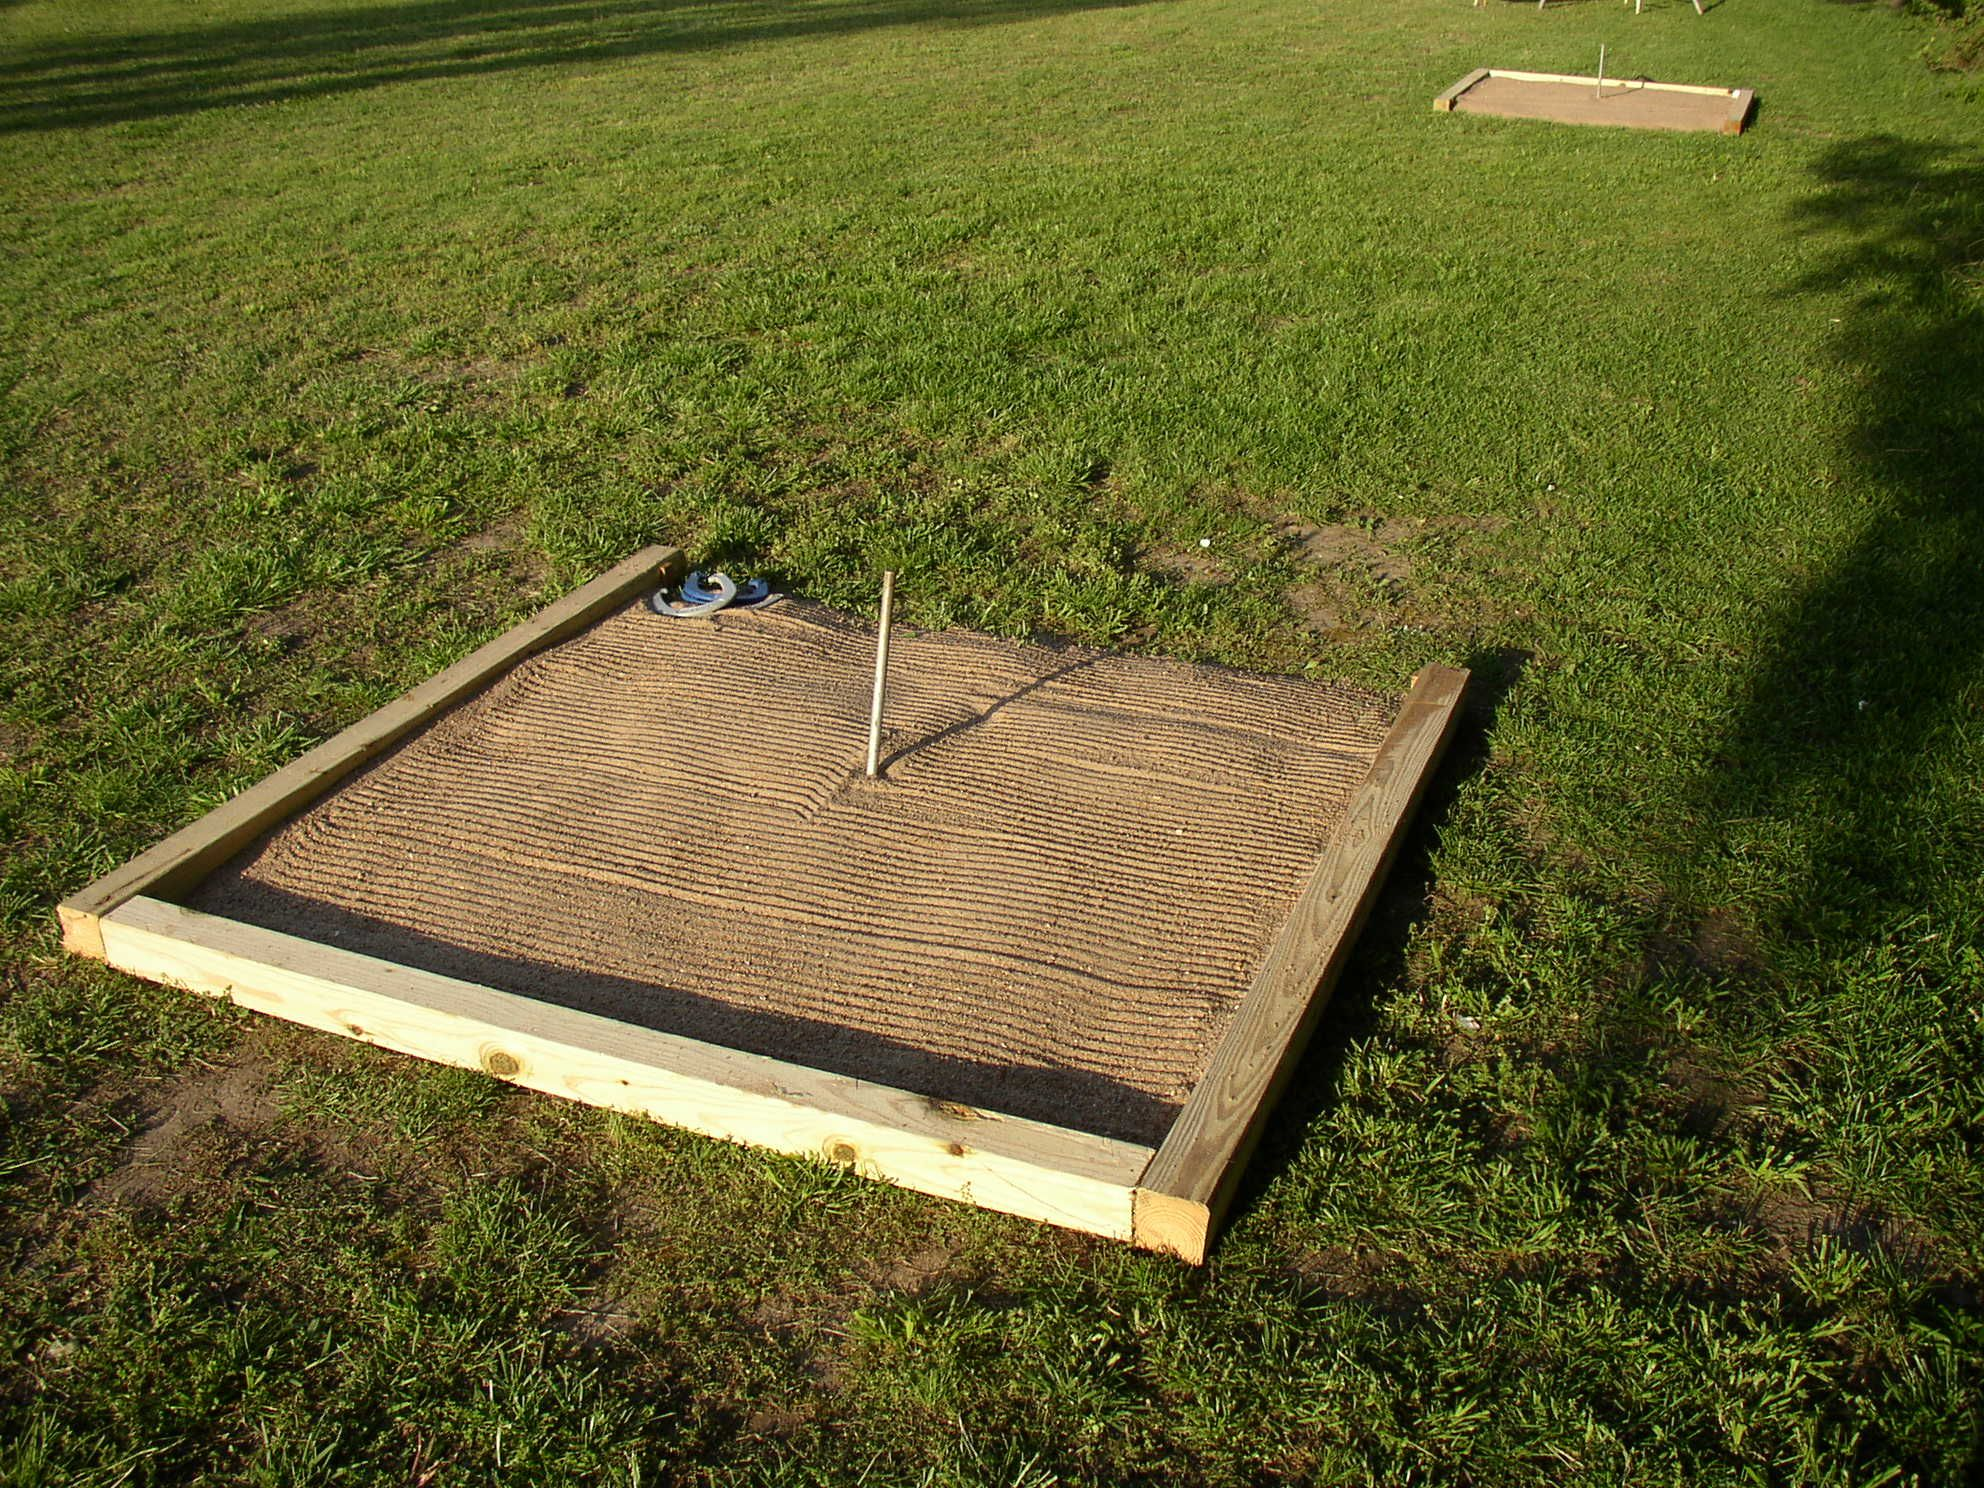 diy horseshoe pit horseshoe pits dimyself pinterest